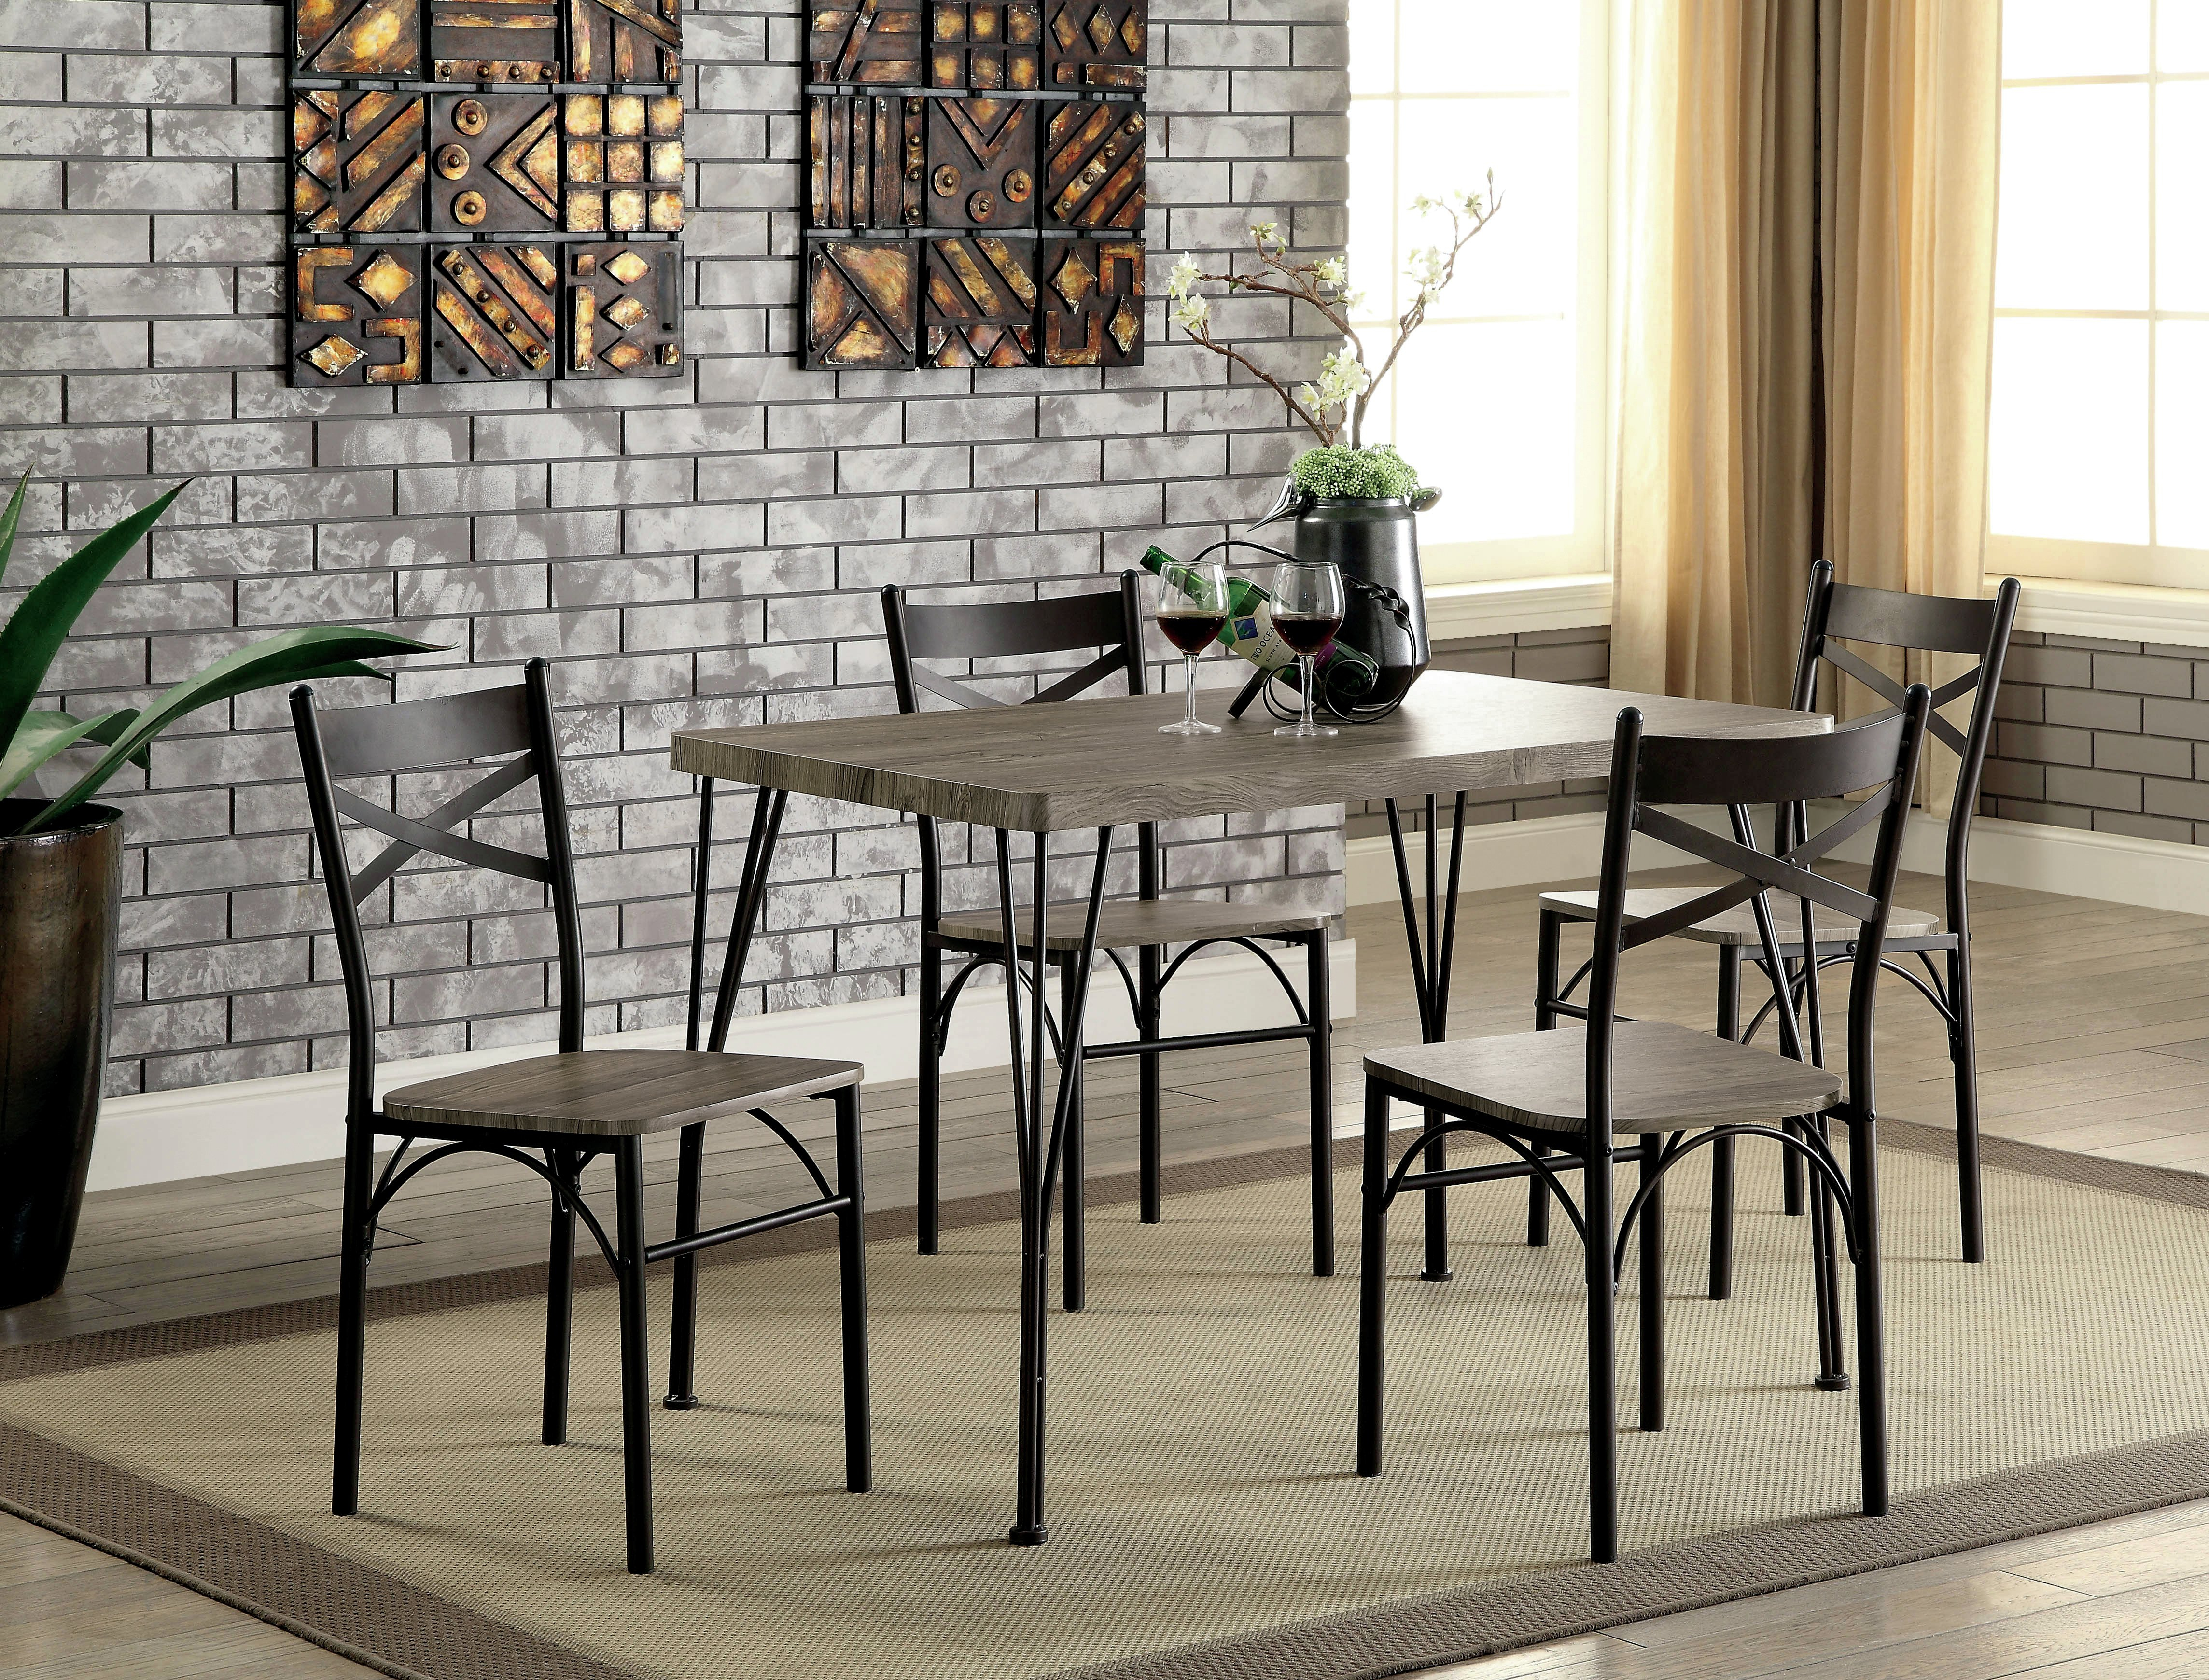 Middleport 5 Piece Dining Sets Within Fashionable Andover Mills Middleport 5 Piece Dining Set & Reviews (#7 of 20)